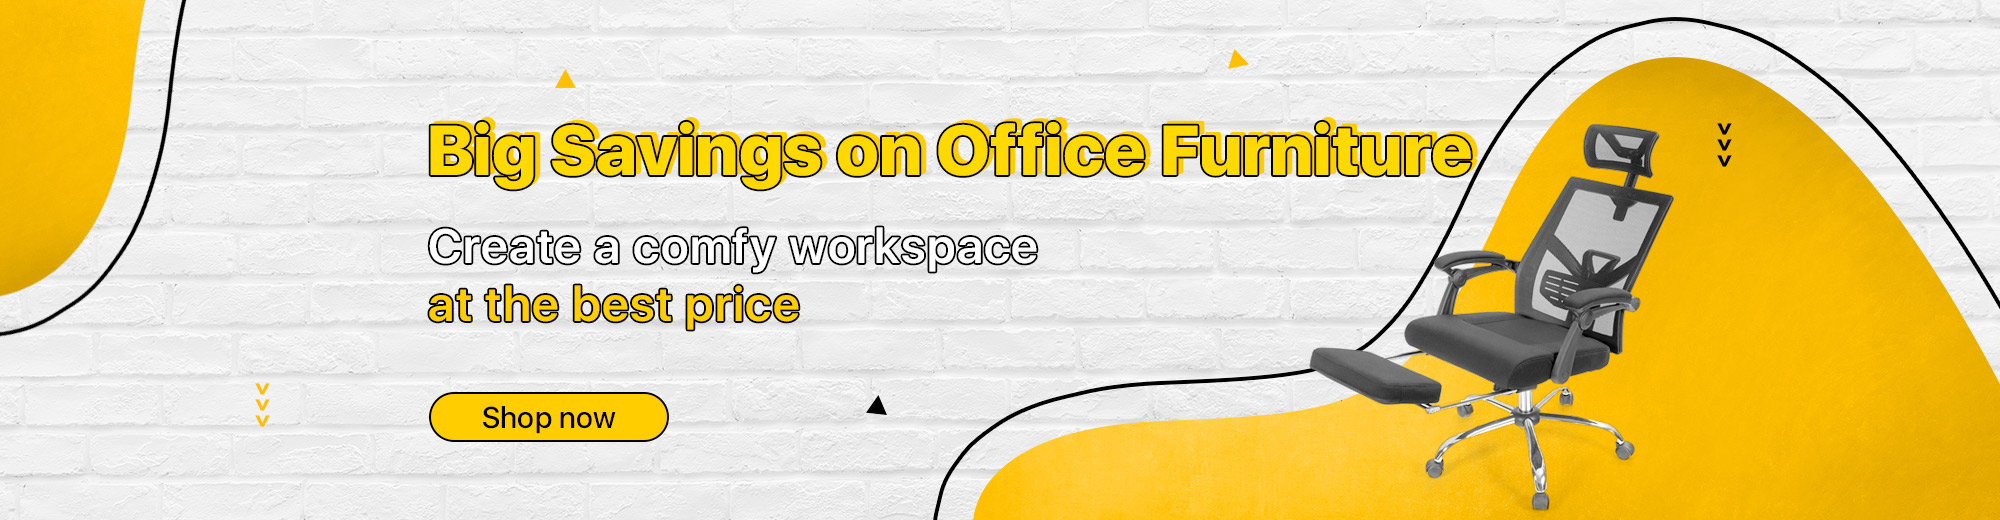 Affiliate, office furniture, blow out price